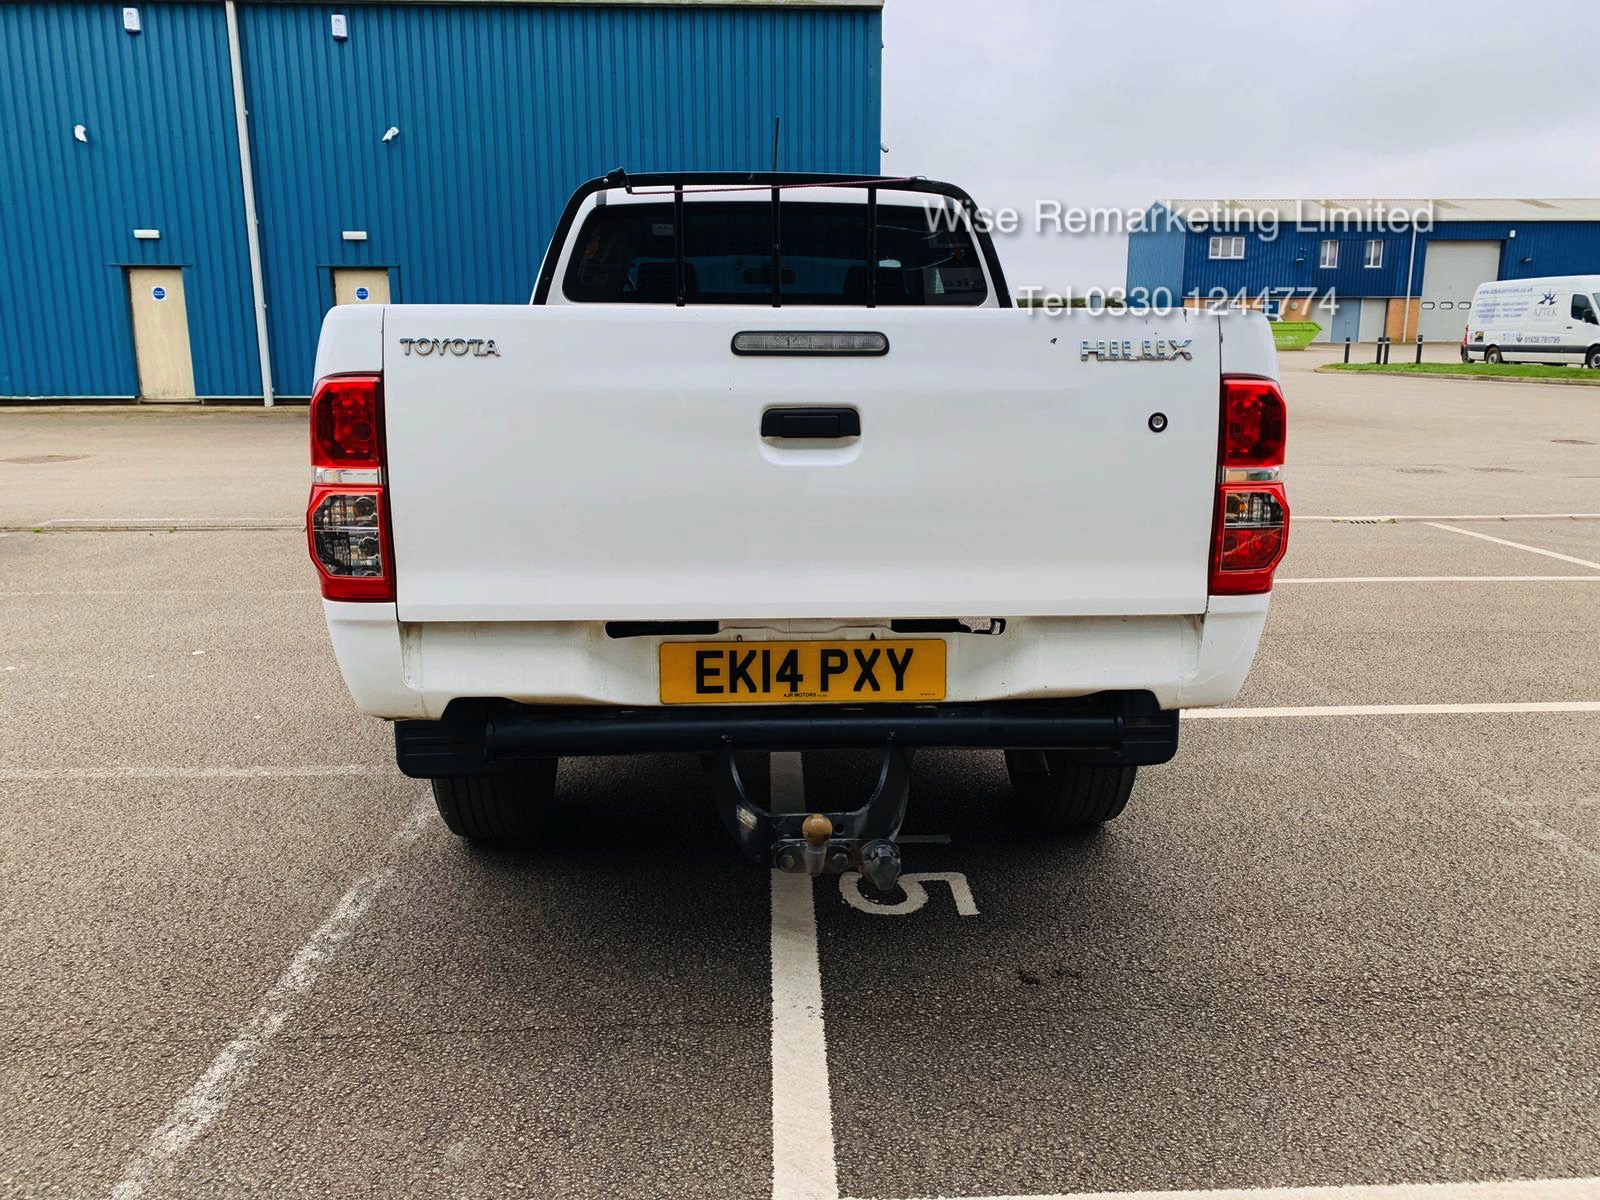 Reserve Met Toyota Hilux Active 2.5 D-4D 4X4 - 2014 14 Reg - Air Con - Tow Pack - SAVE 20% NO VAT - Image 5 of 17